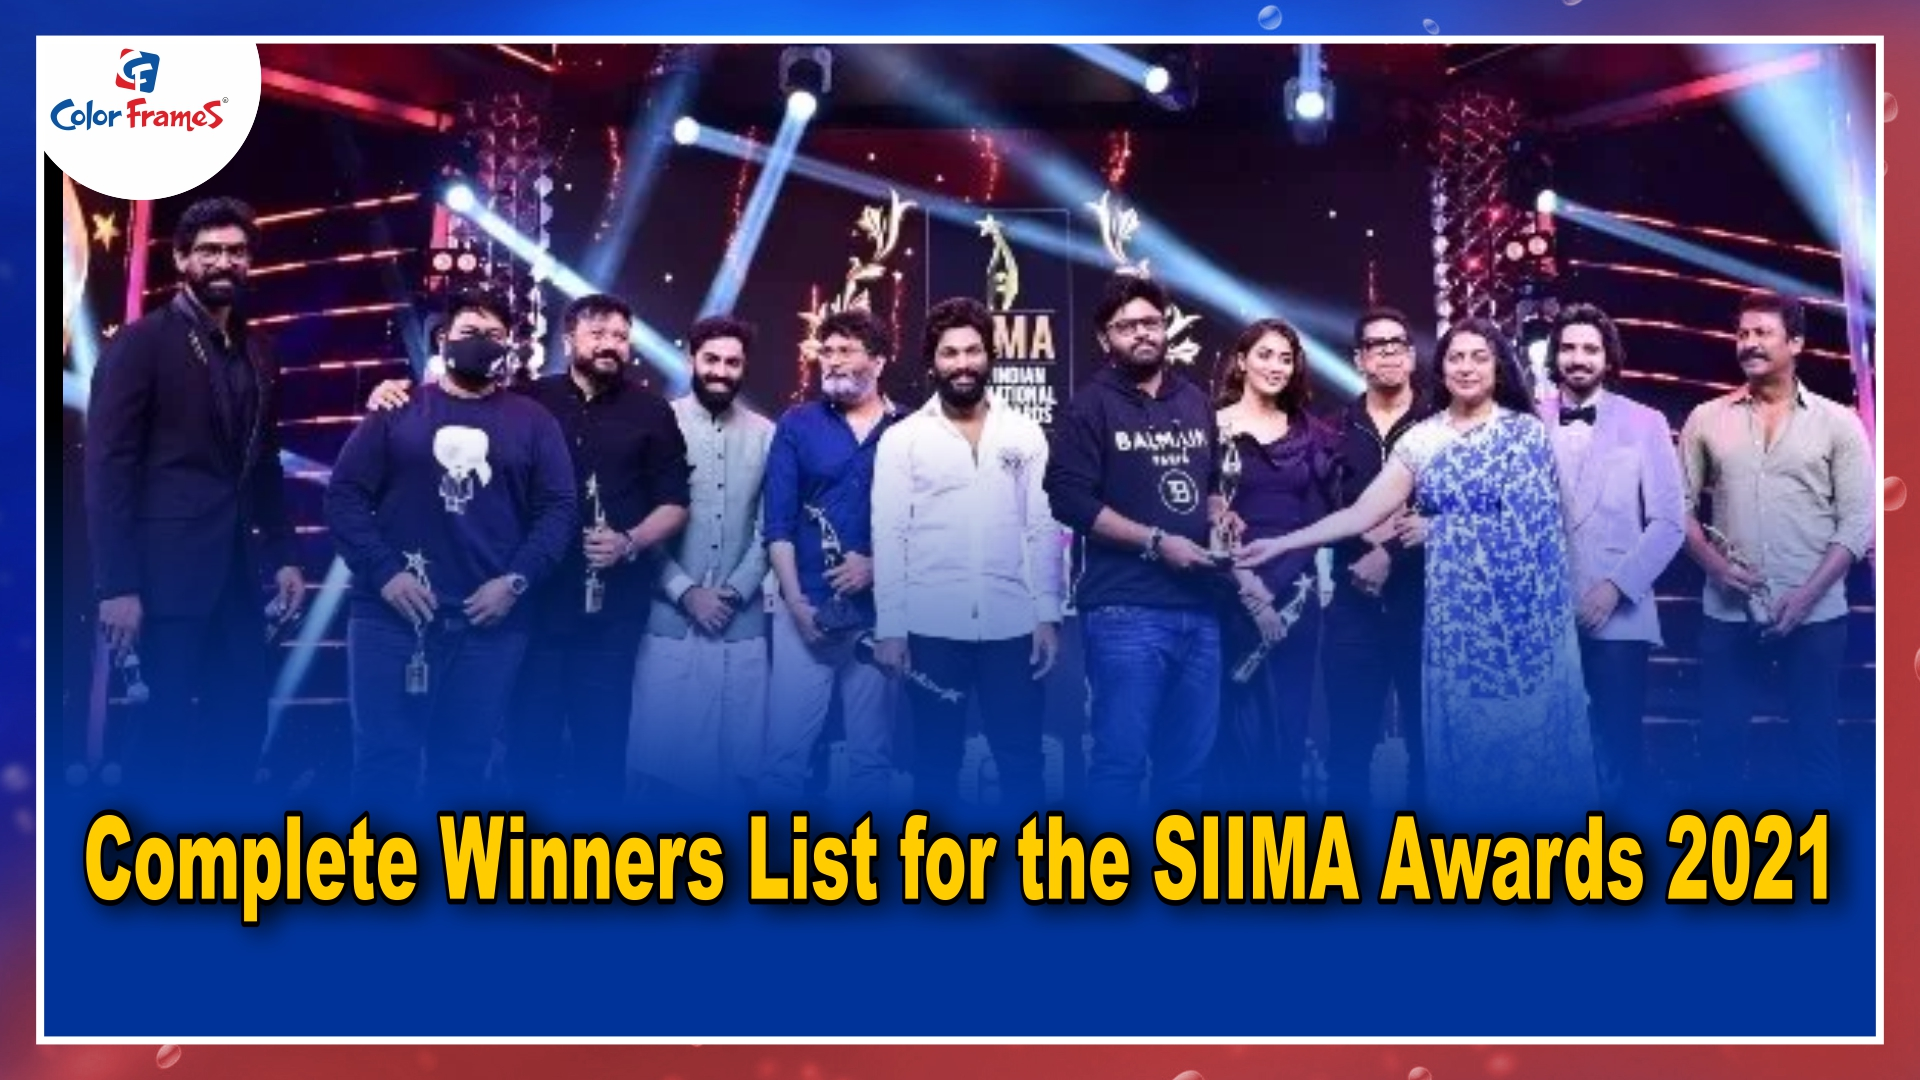 Complete Winners List for the SIIMA Awards 2021